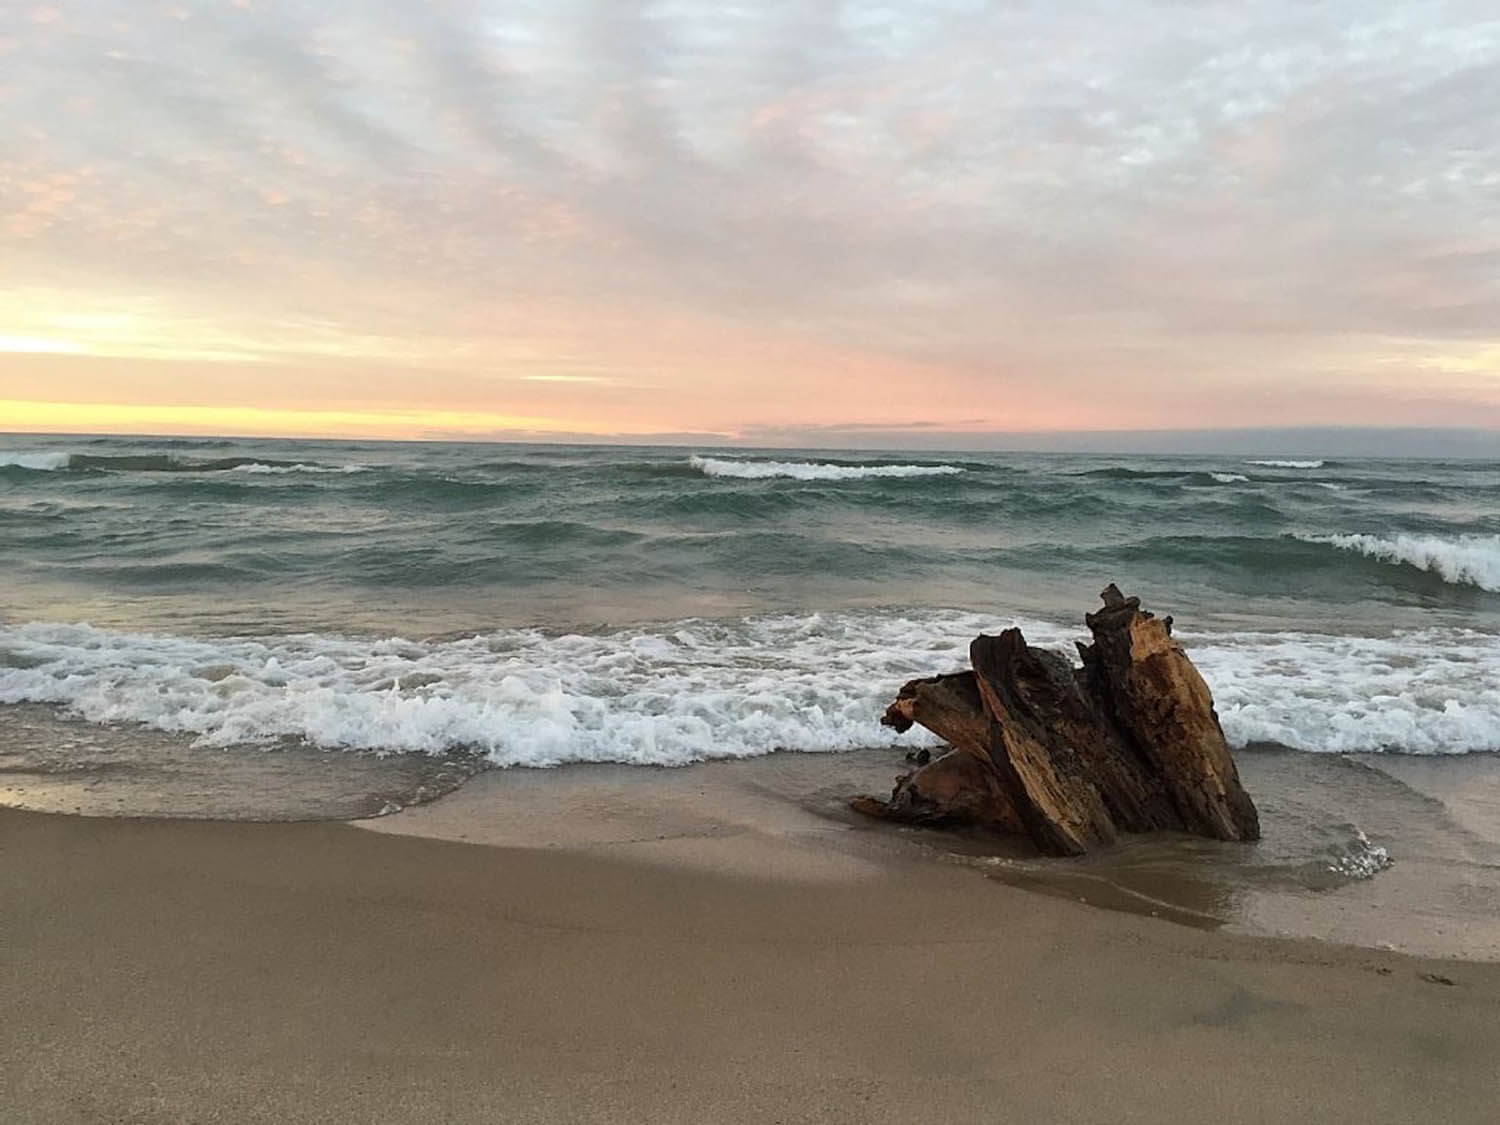 Waves of Lake Michigan are crashing onto the sandy beach. There is a large piece of driftwood in the sand. The sun is setting and the sky is beautiful shades of grey, blue, pink, and yellow.